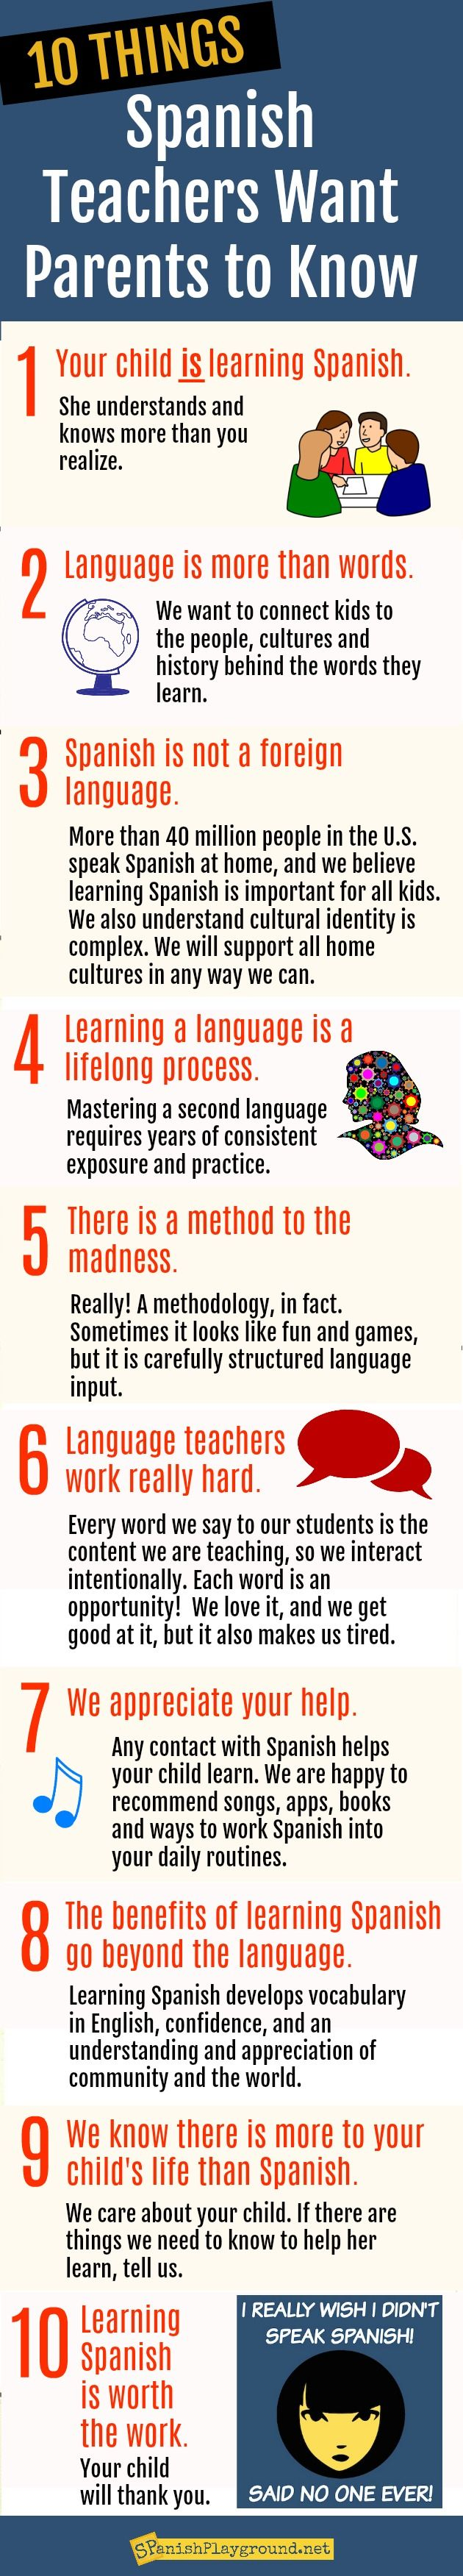 Spanish teachers want parents to understand these important ideas about language learning.